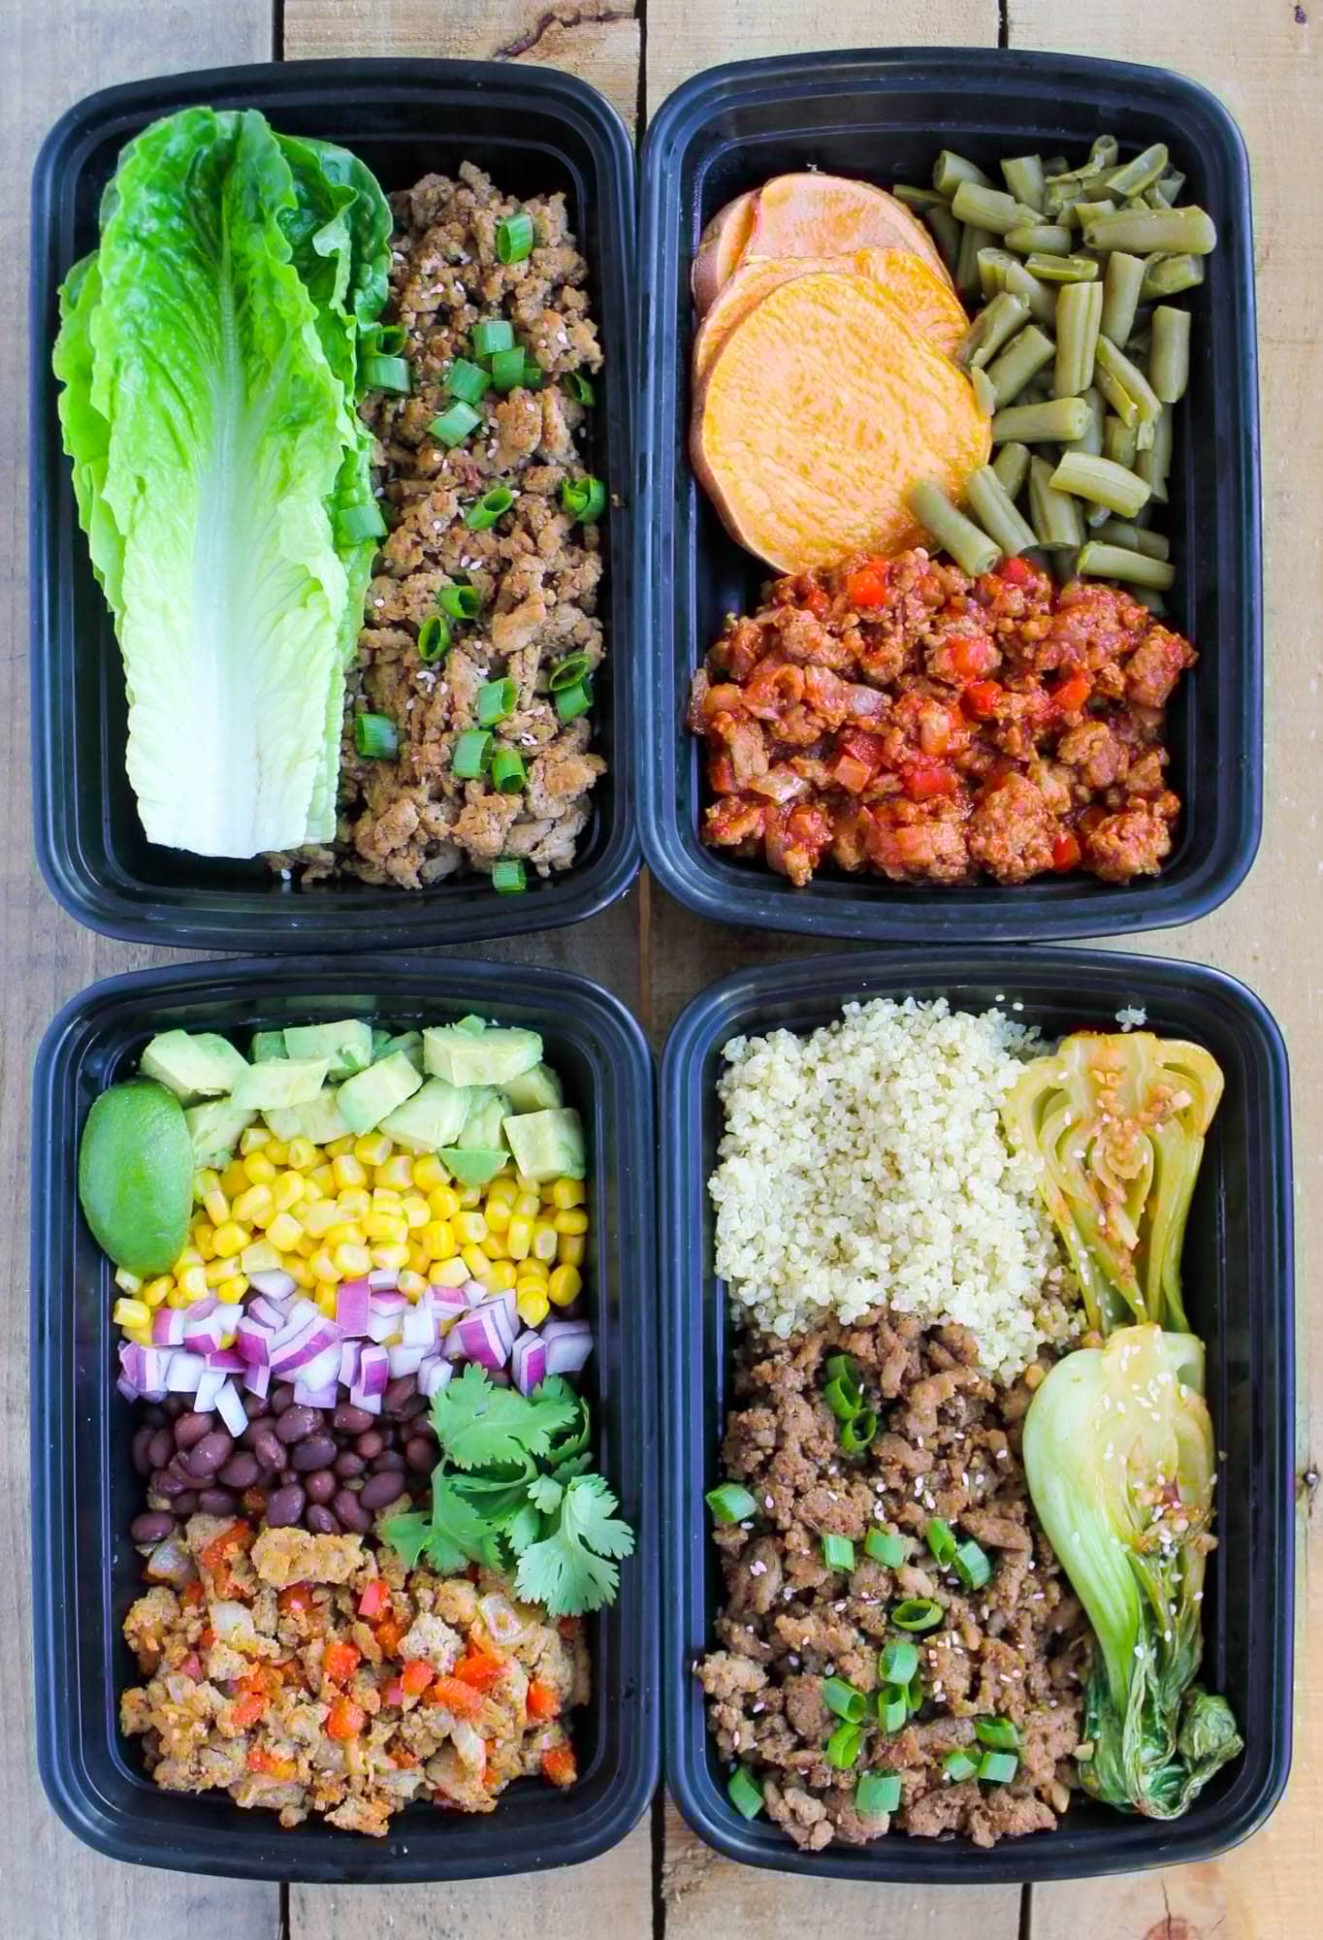 Easy Ground Turkey Meal Prep Bowls: 4 Ways - Smile Sandwich - food recipes easy healthy